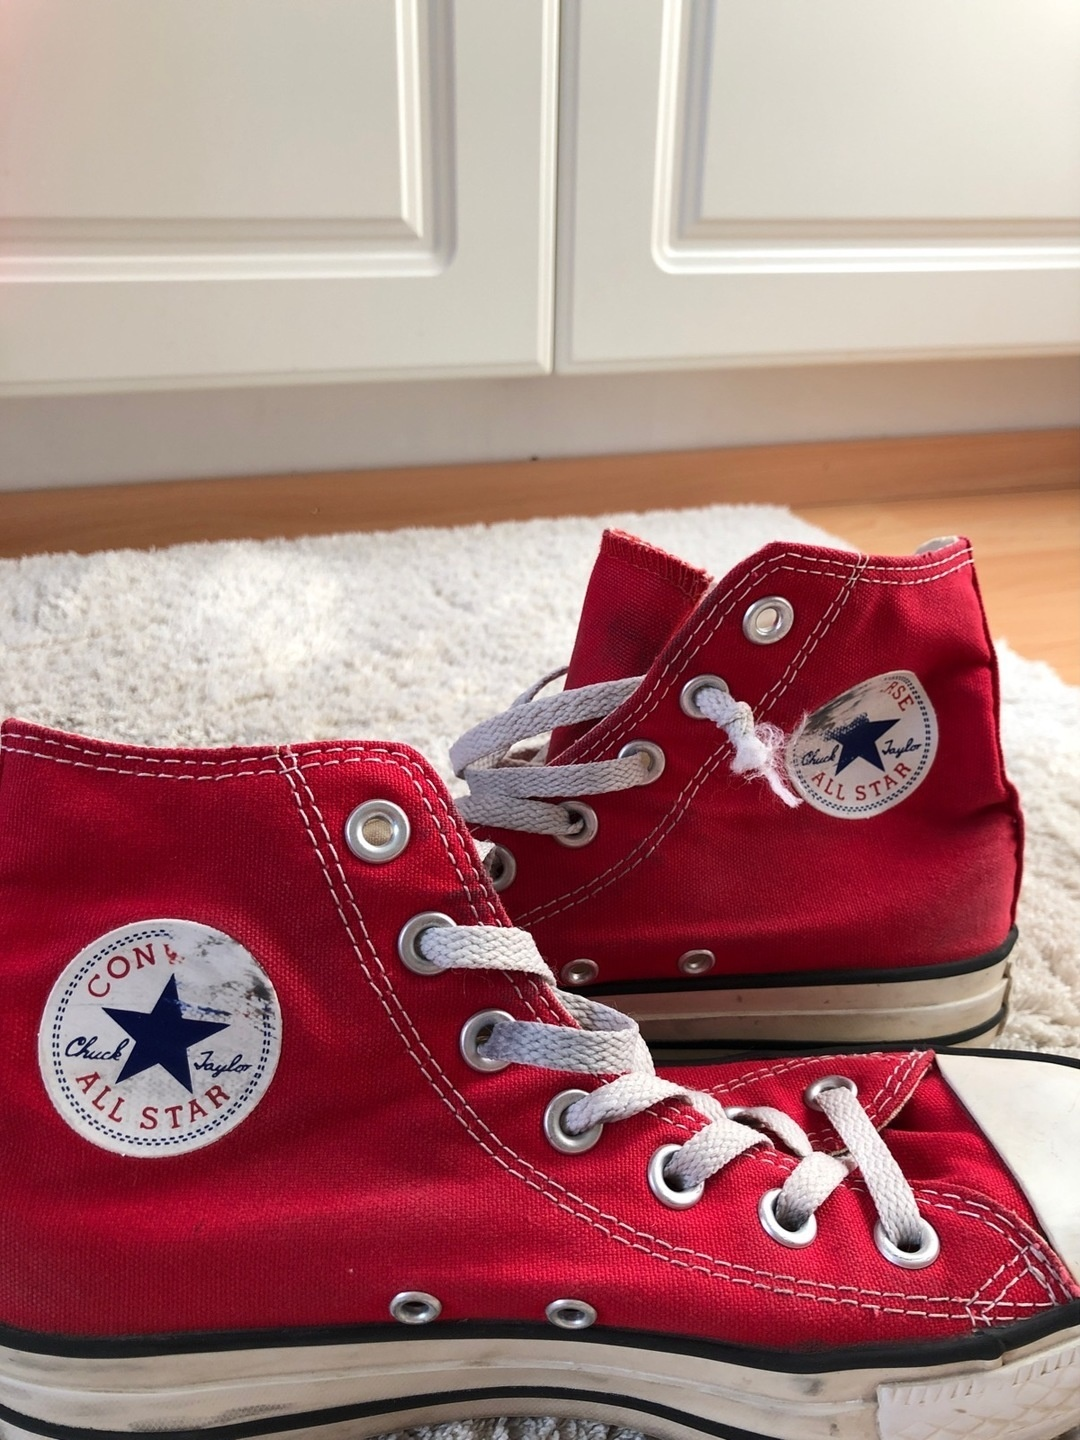 Women's sneakers - CONVERSE photo 3